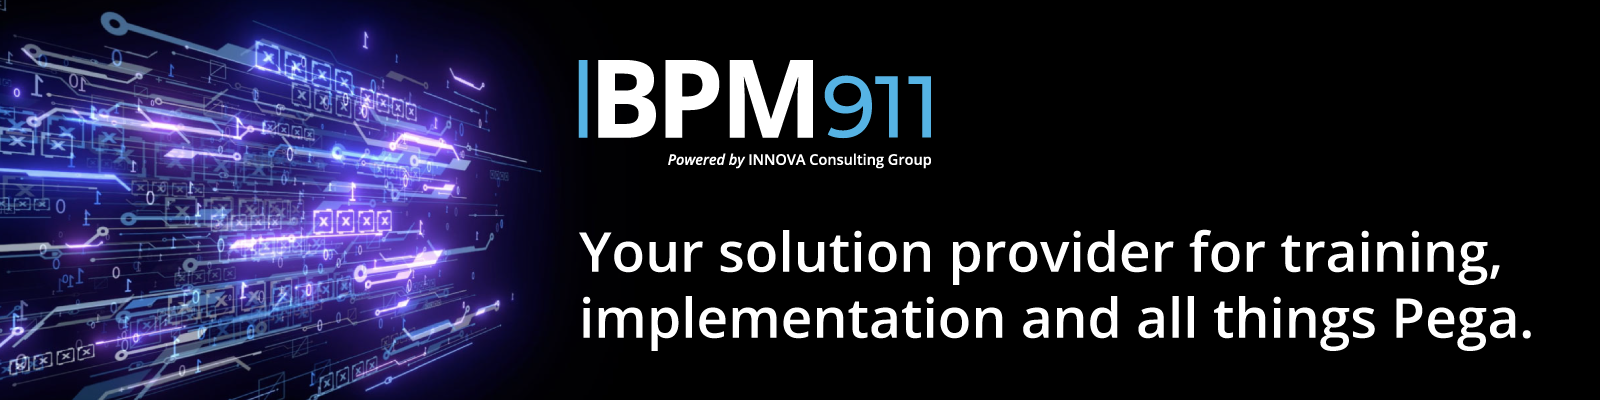 BPM911 Pega Implementation and Training Services